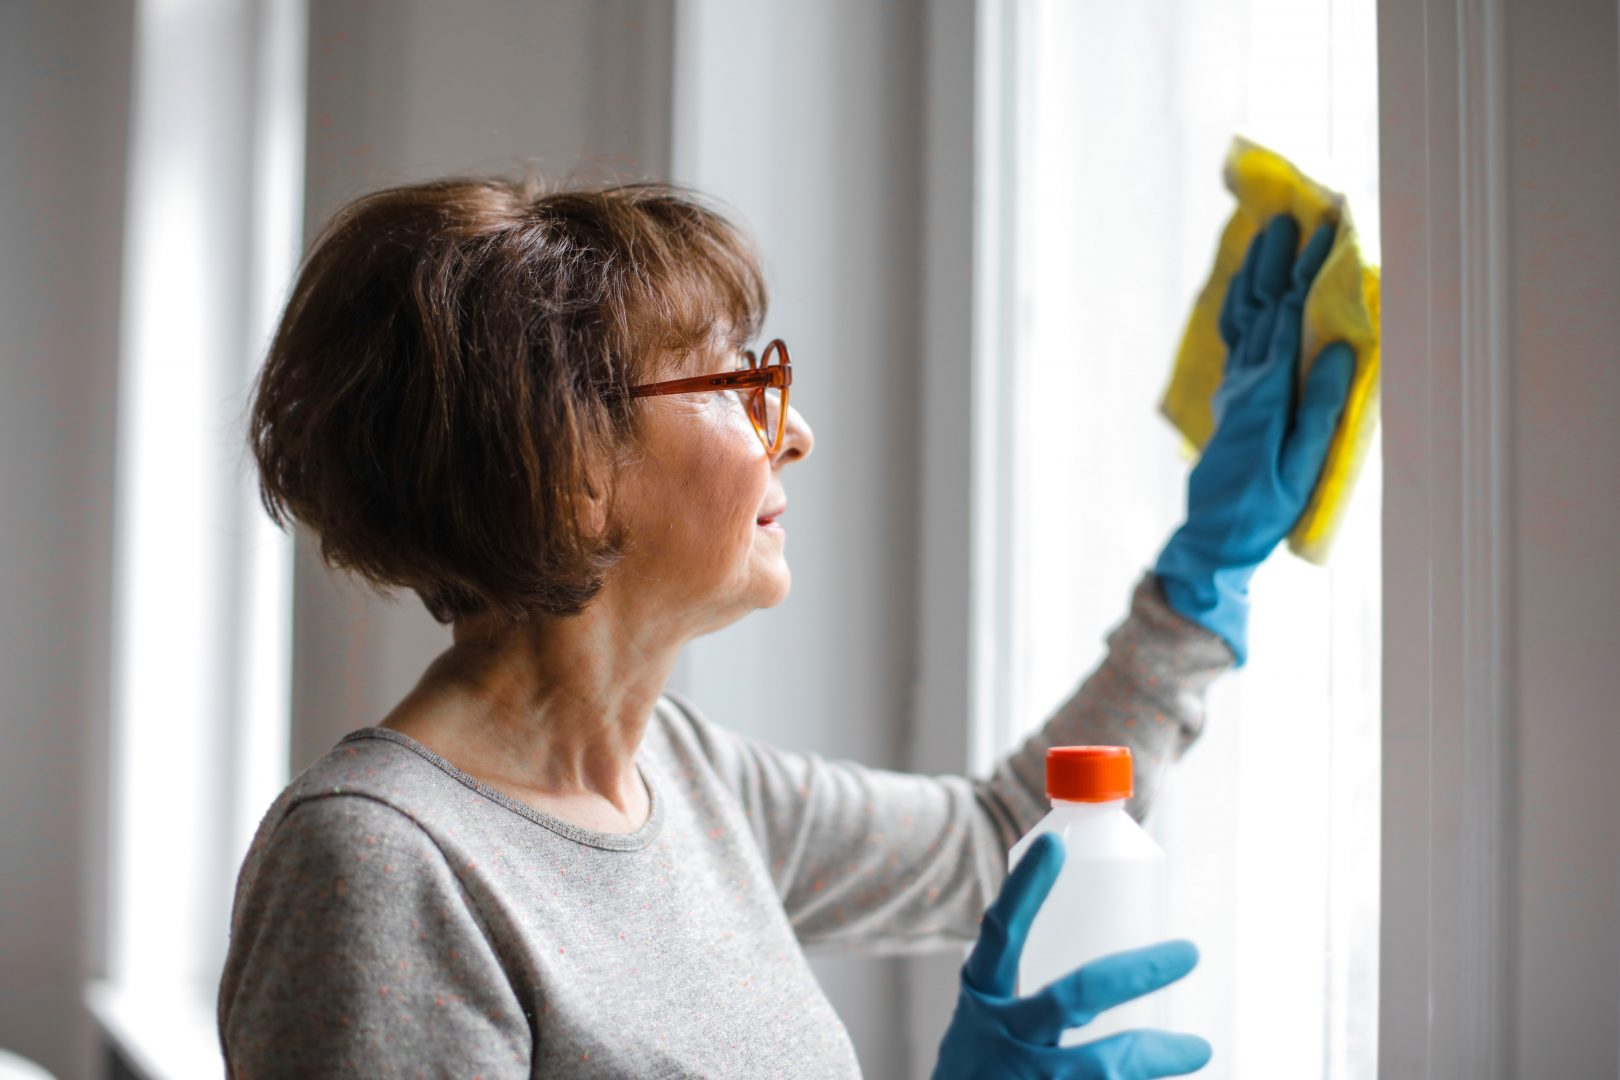 woman spring cleaning by cleaning her windows